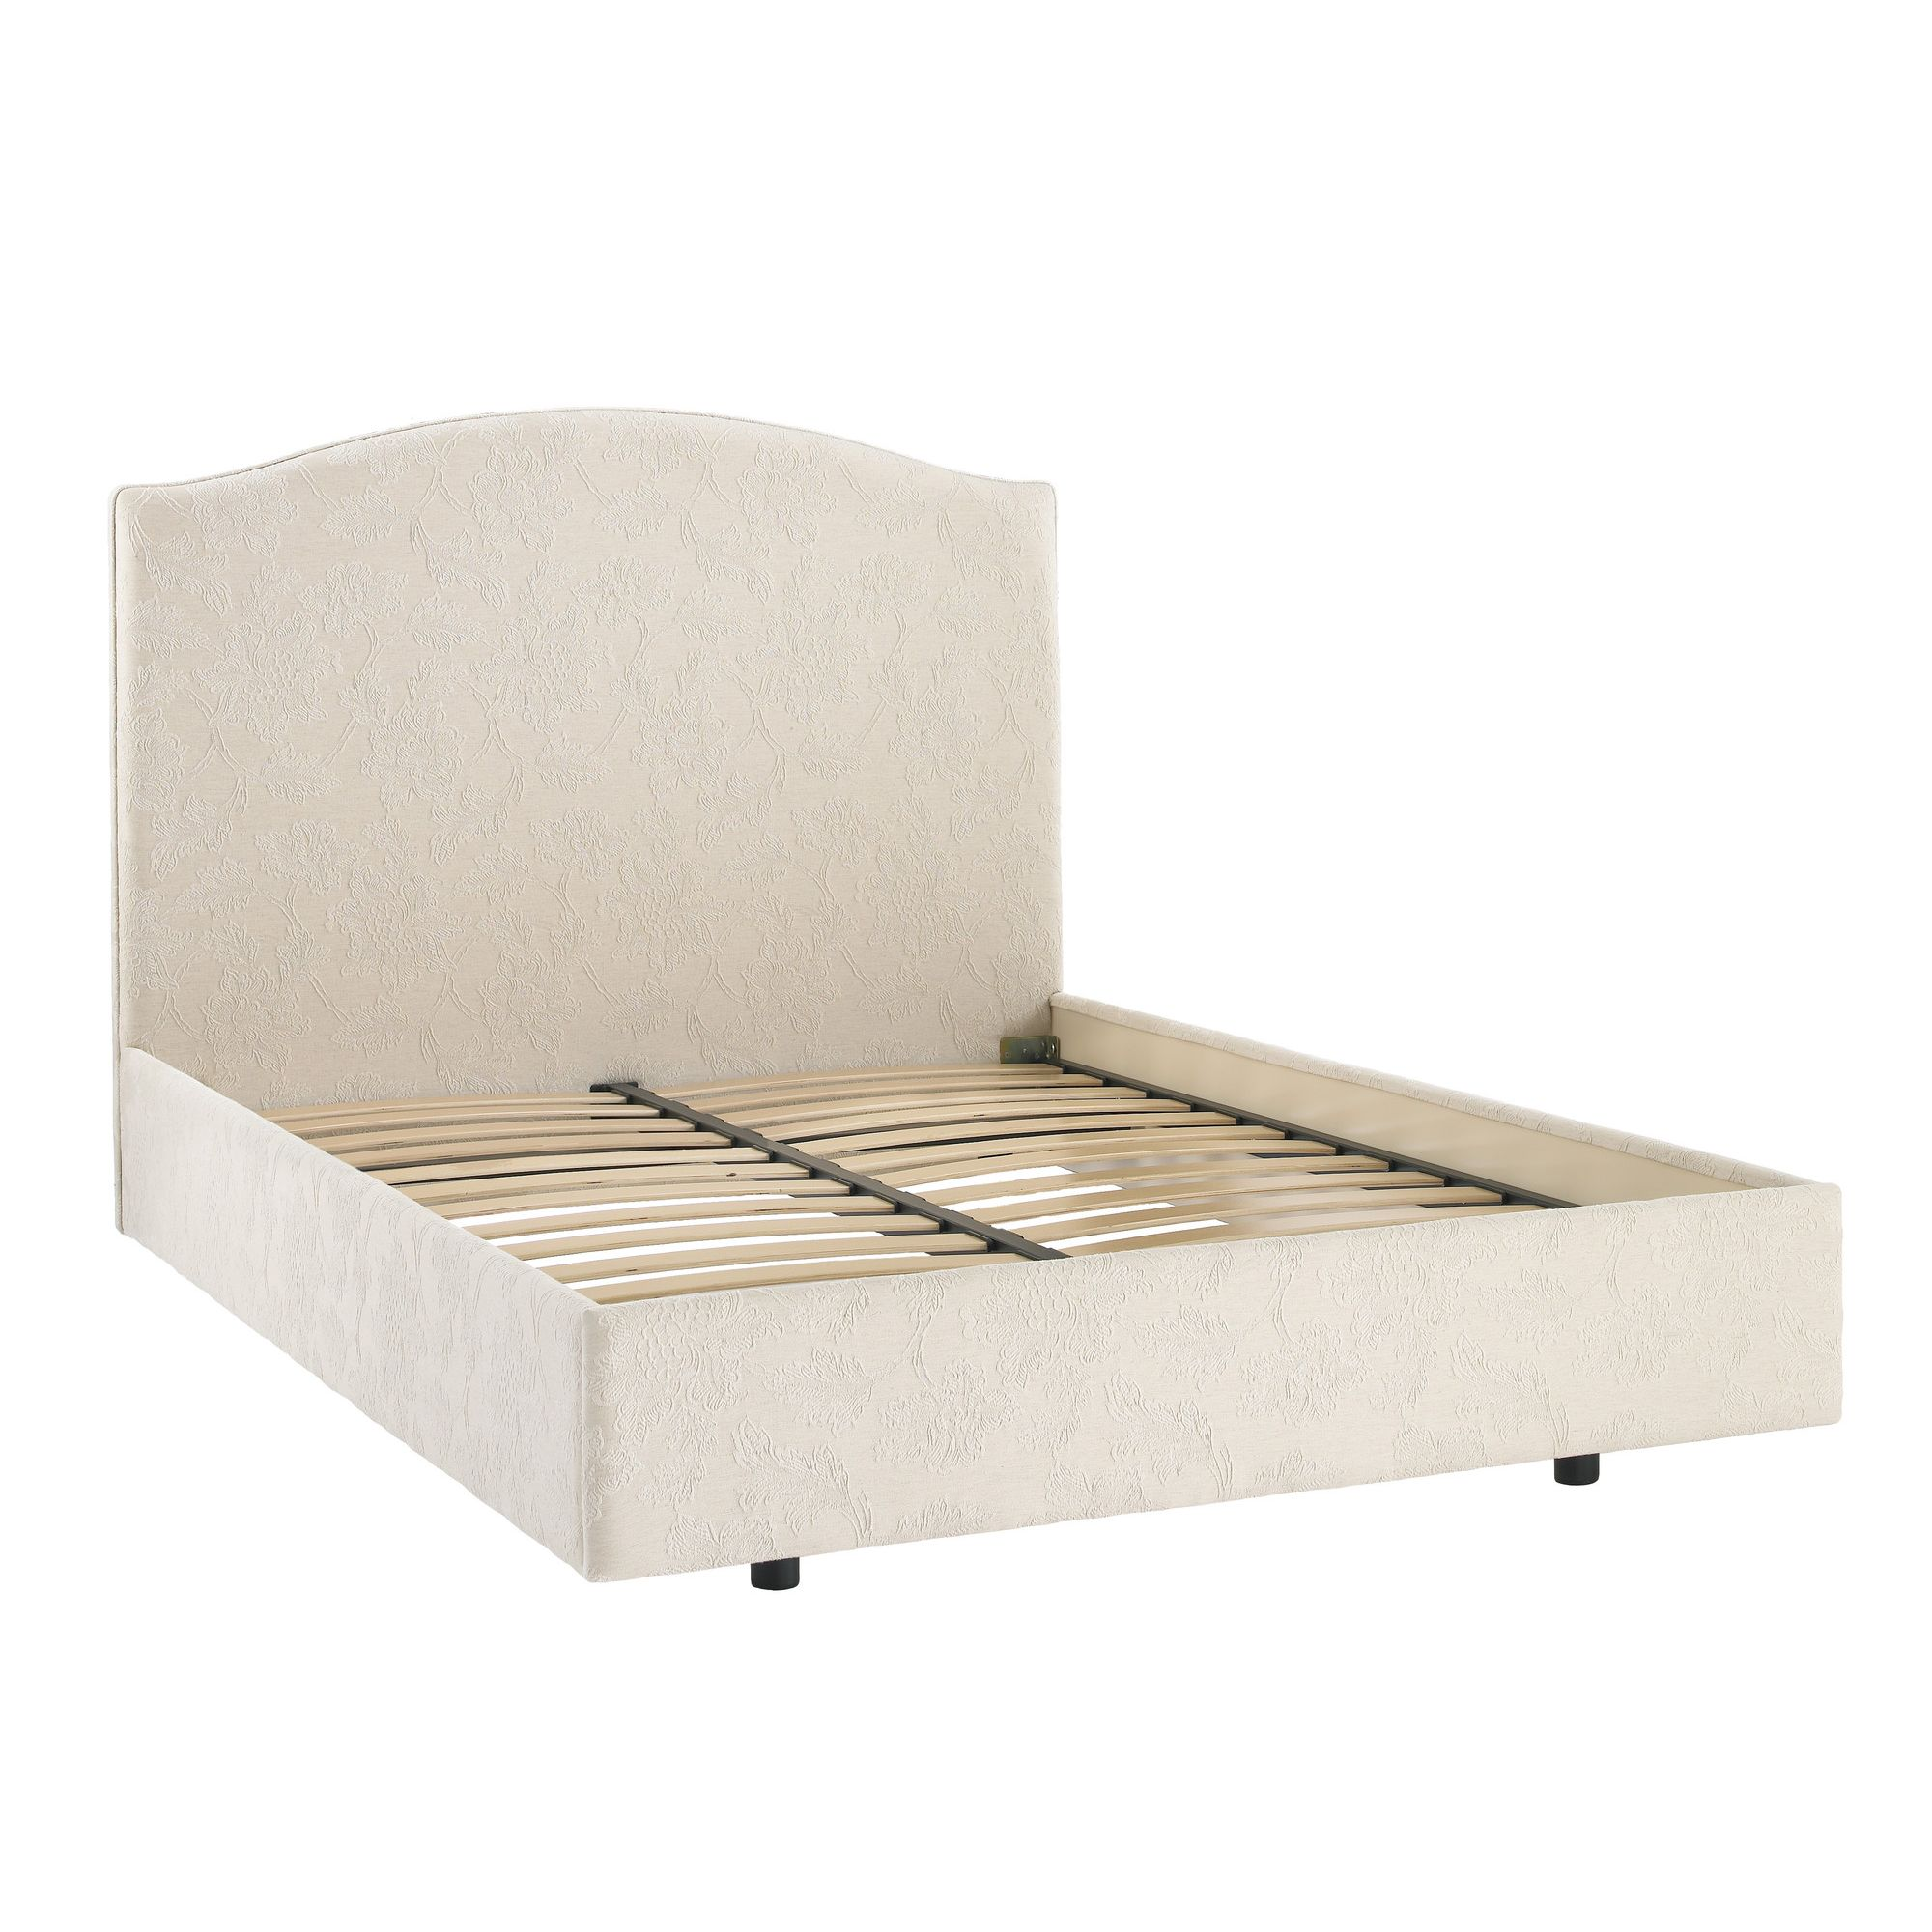 Swanglen Nice Ottoman Bedstead - King / Chelsea Almond at Tesco Direct